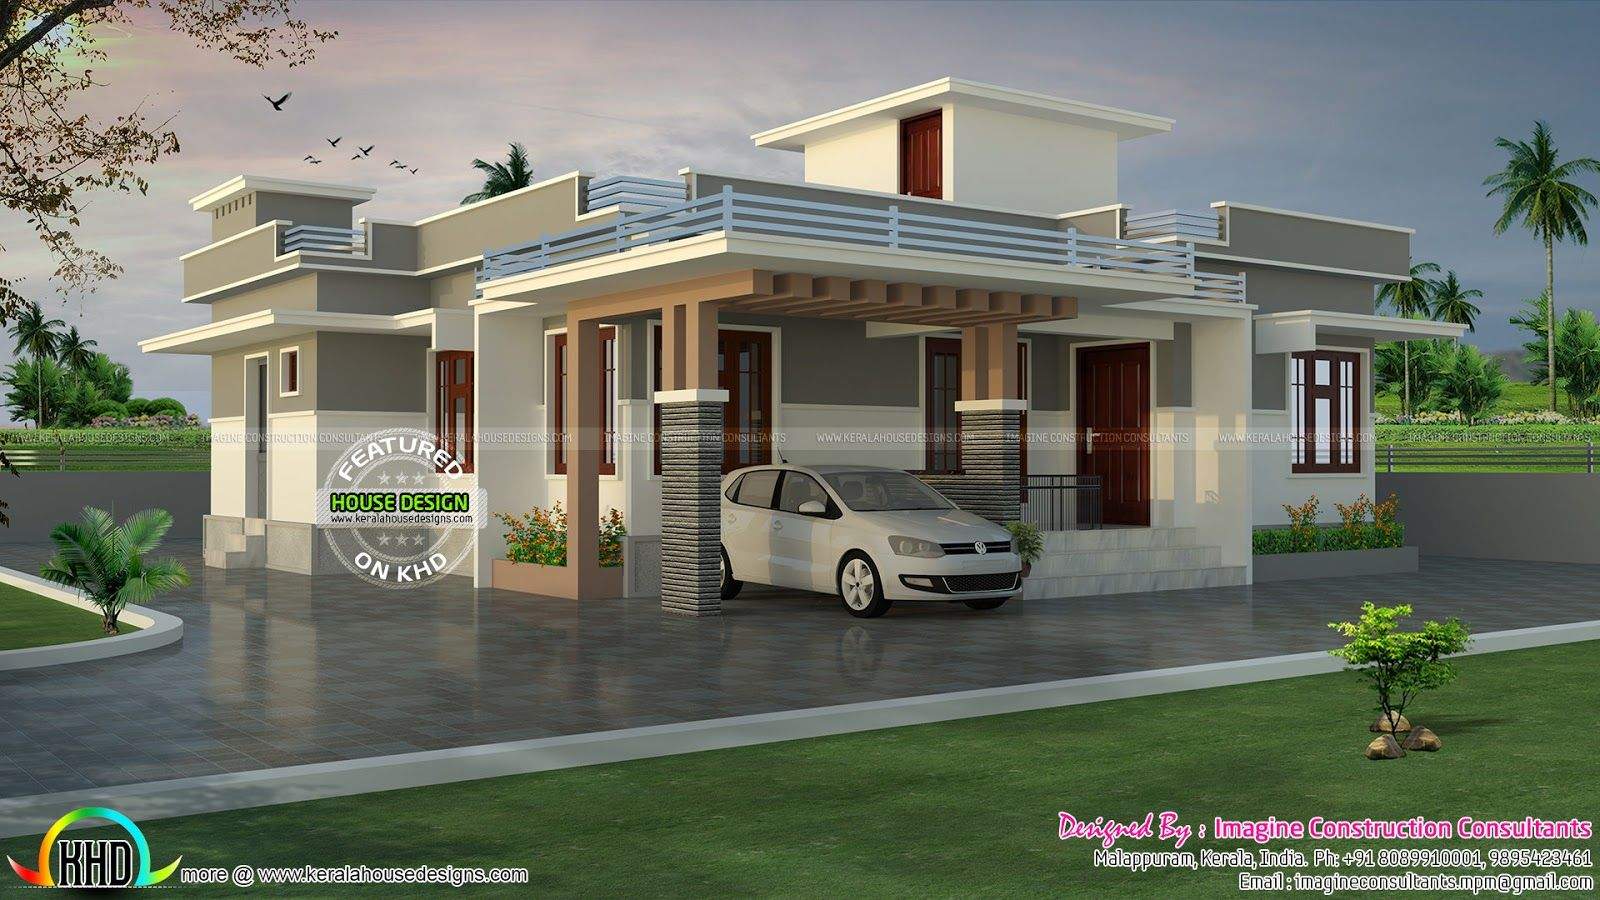 20 Lakh Home In Surat Home Design Under 20 Lakhs Home Design